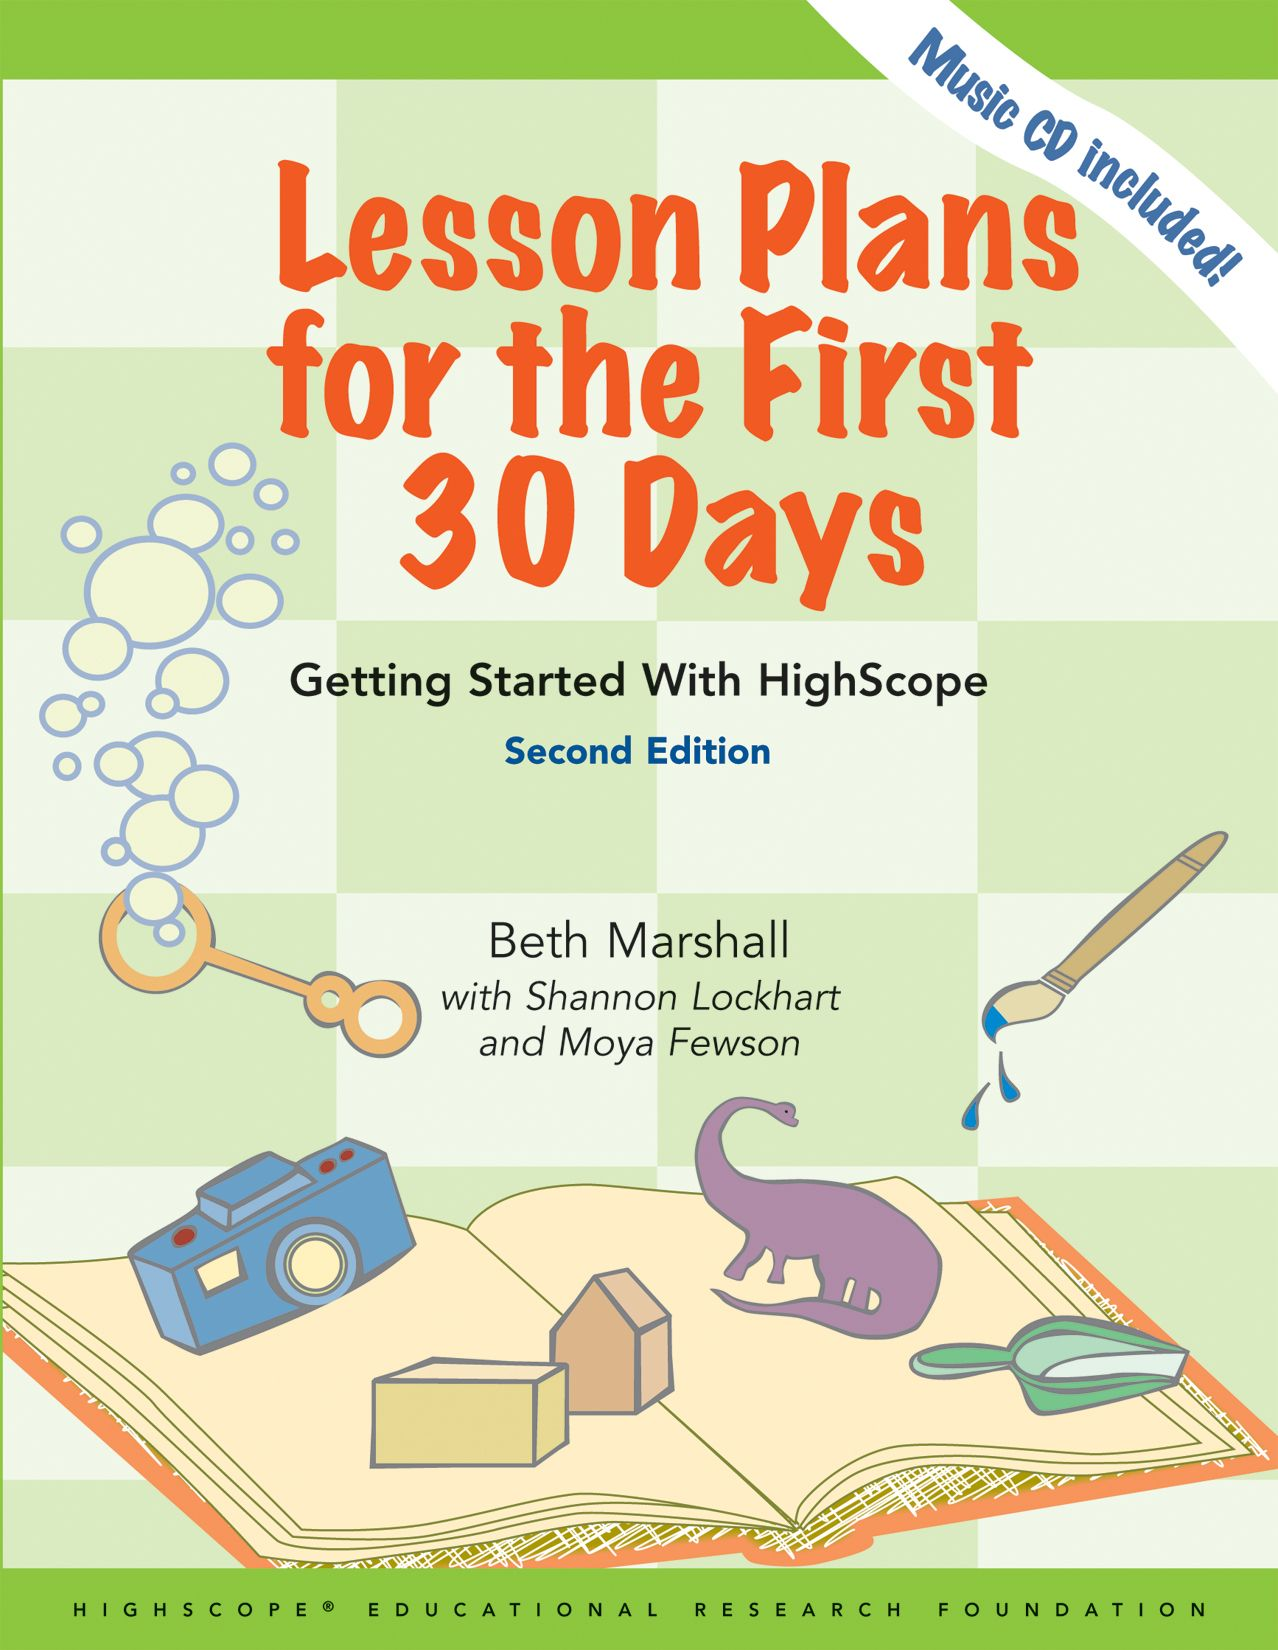 This Appealing Guide Puts 30 Days Of Ready To Use HighScope Lesson Plans Right At Your Fingertips For Teachers New There Are 6 Weeks